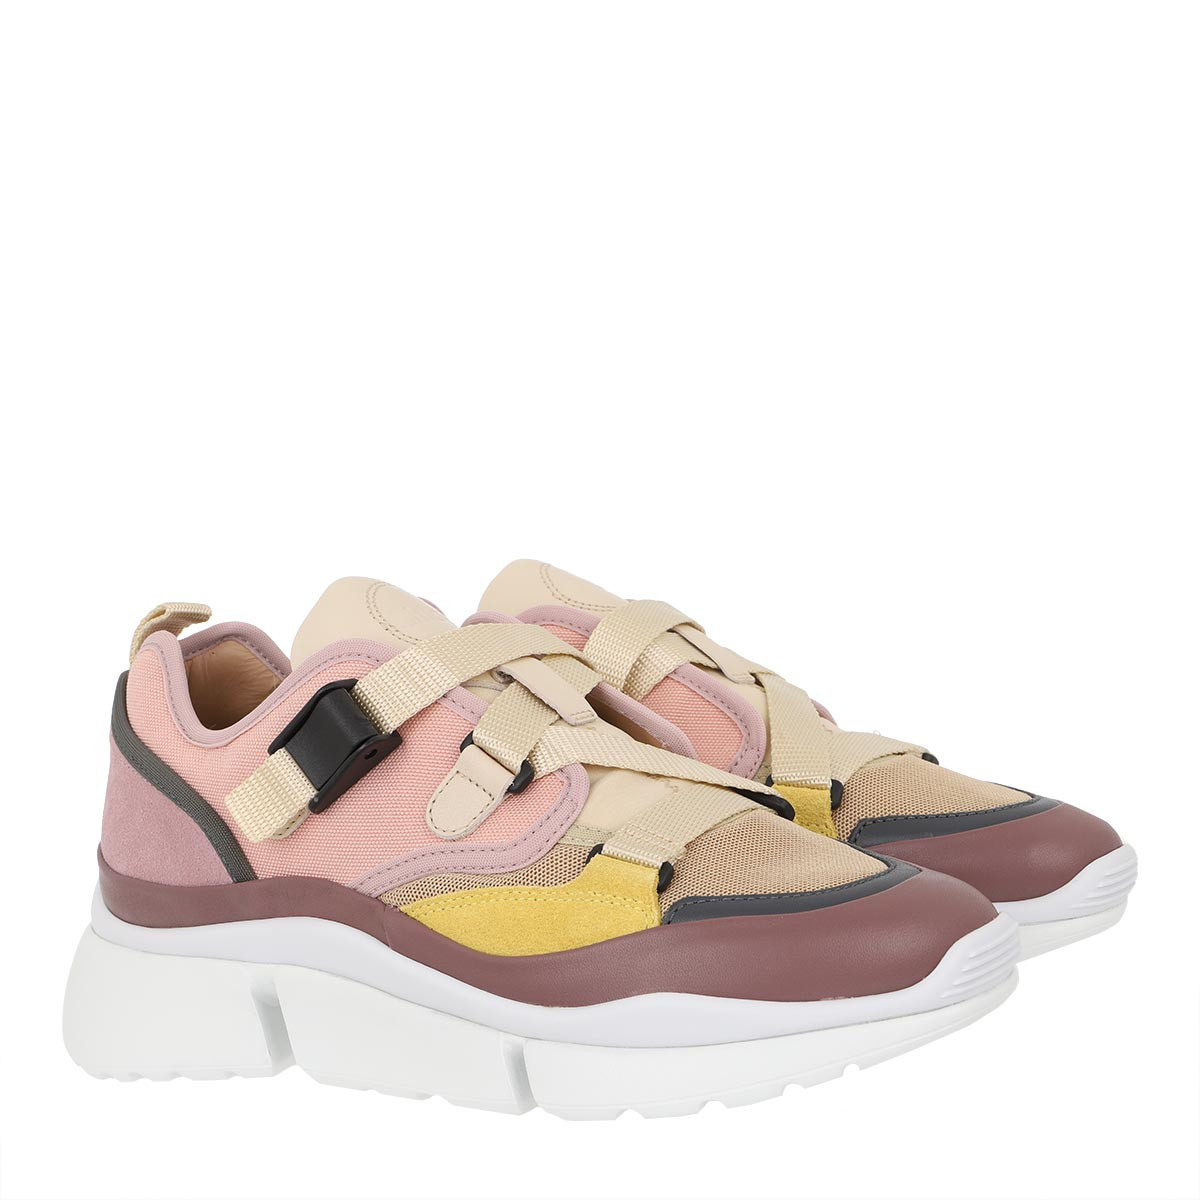 Chloé Sneakers - Sonnie Low Top Sneaker Pink Lavender - in rosa - für Damen